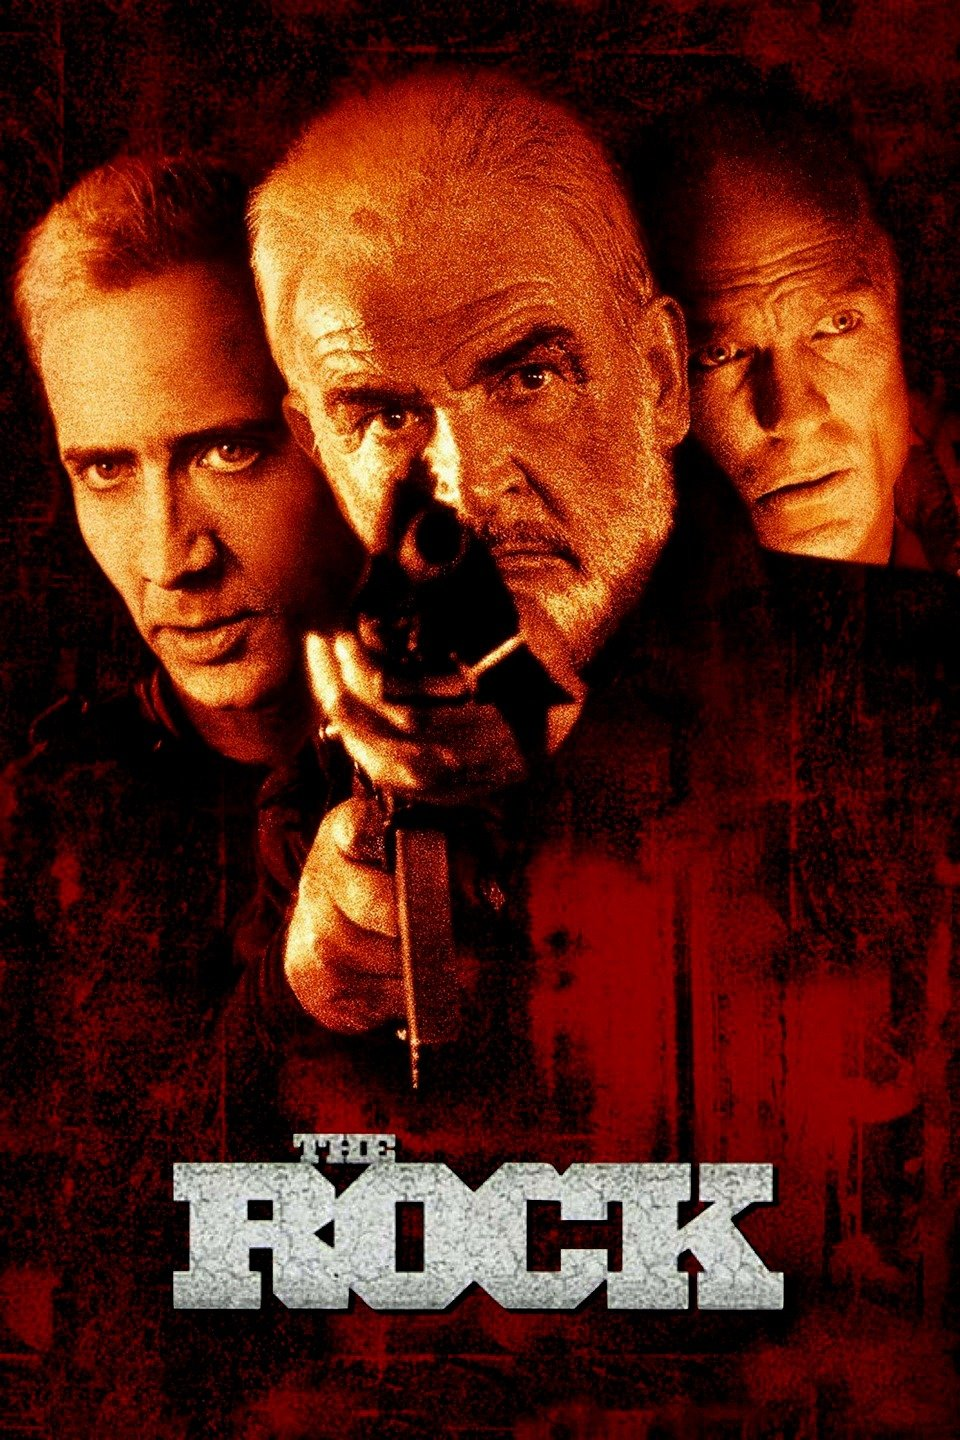 — THE ROCK   FBI chemical warfare expert Stanley Goodspeed (Nicolas Cage) is sent on an urgent mission with a former British spy, John Patrick Mason (Sean Connery), to stop Gen. Francis X. Hummel (Ed Harris) from launching chemical weapons on Alcatraz Island into San Francisco.